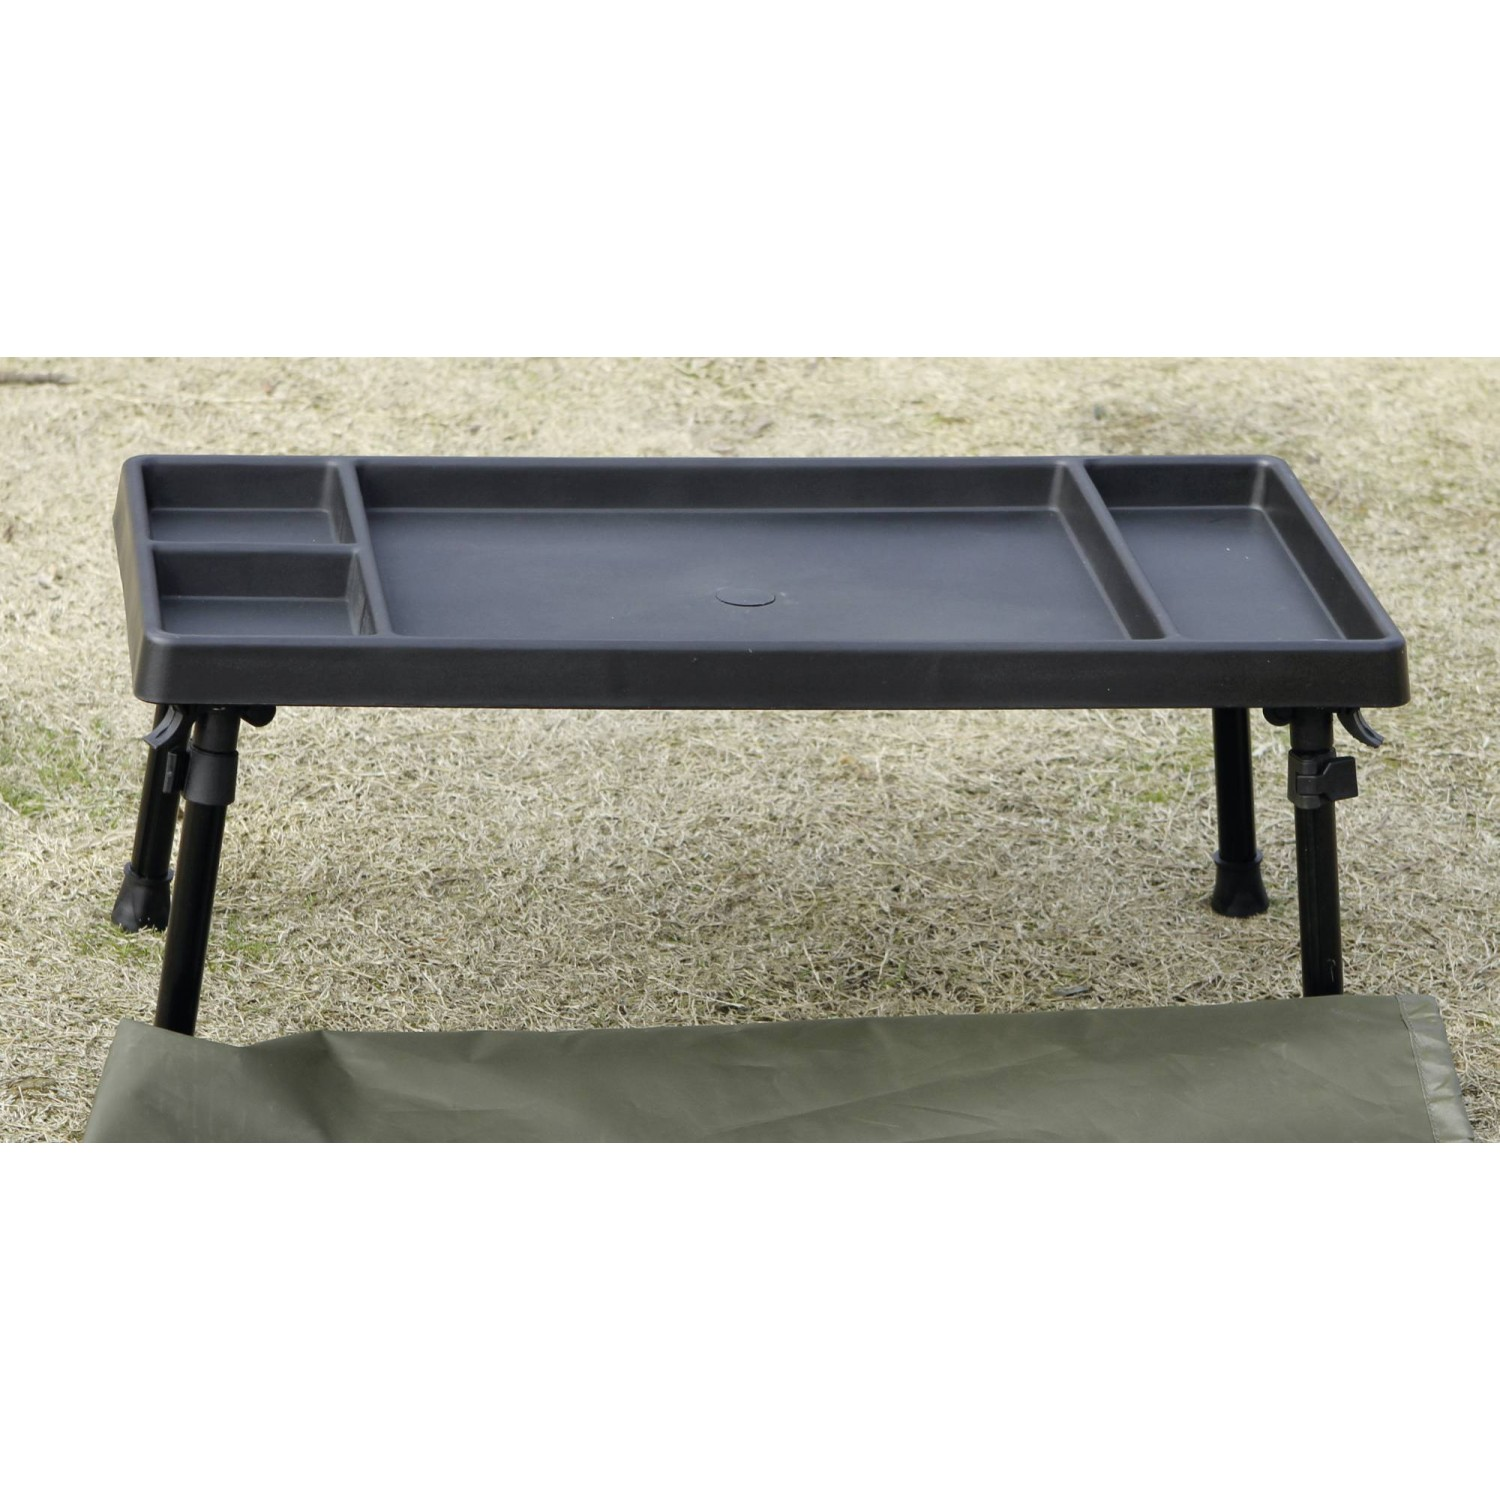 Pelzer Hard Bivvy Table, 71 x 30 x 25cm